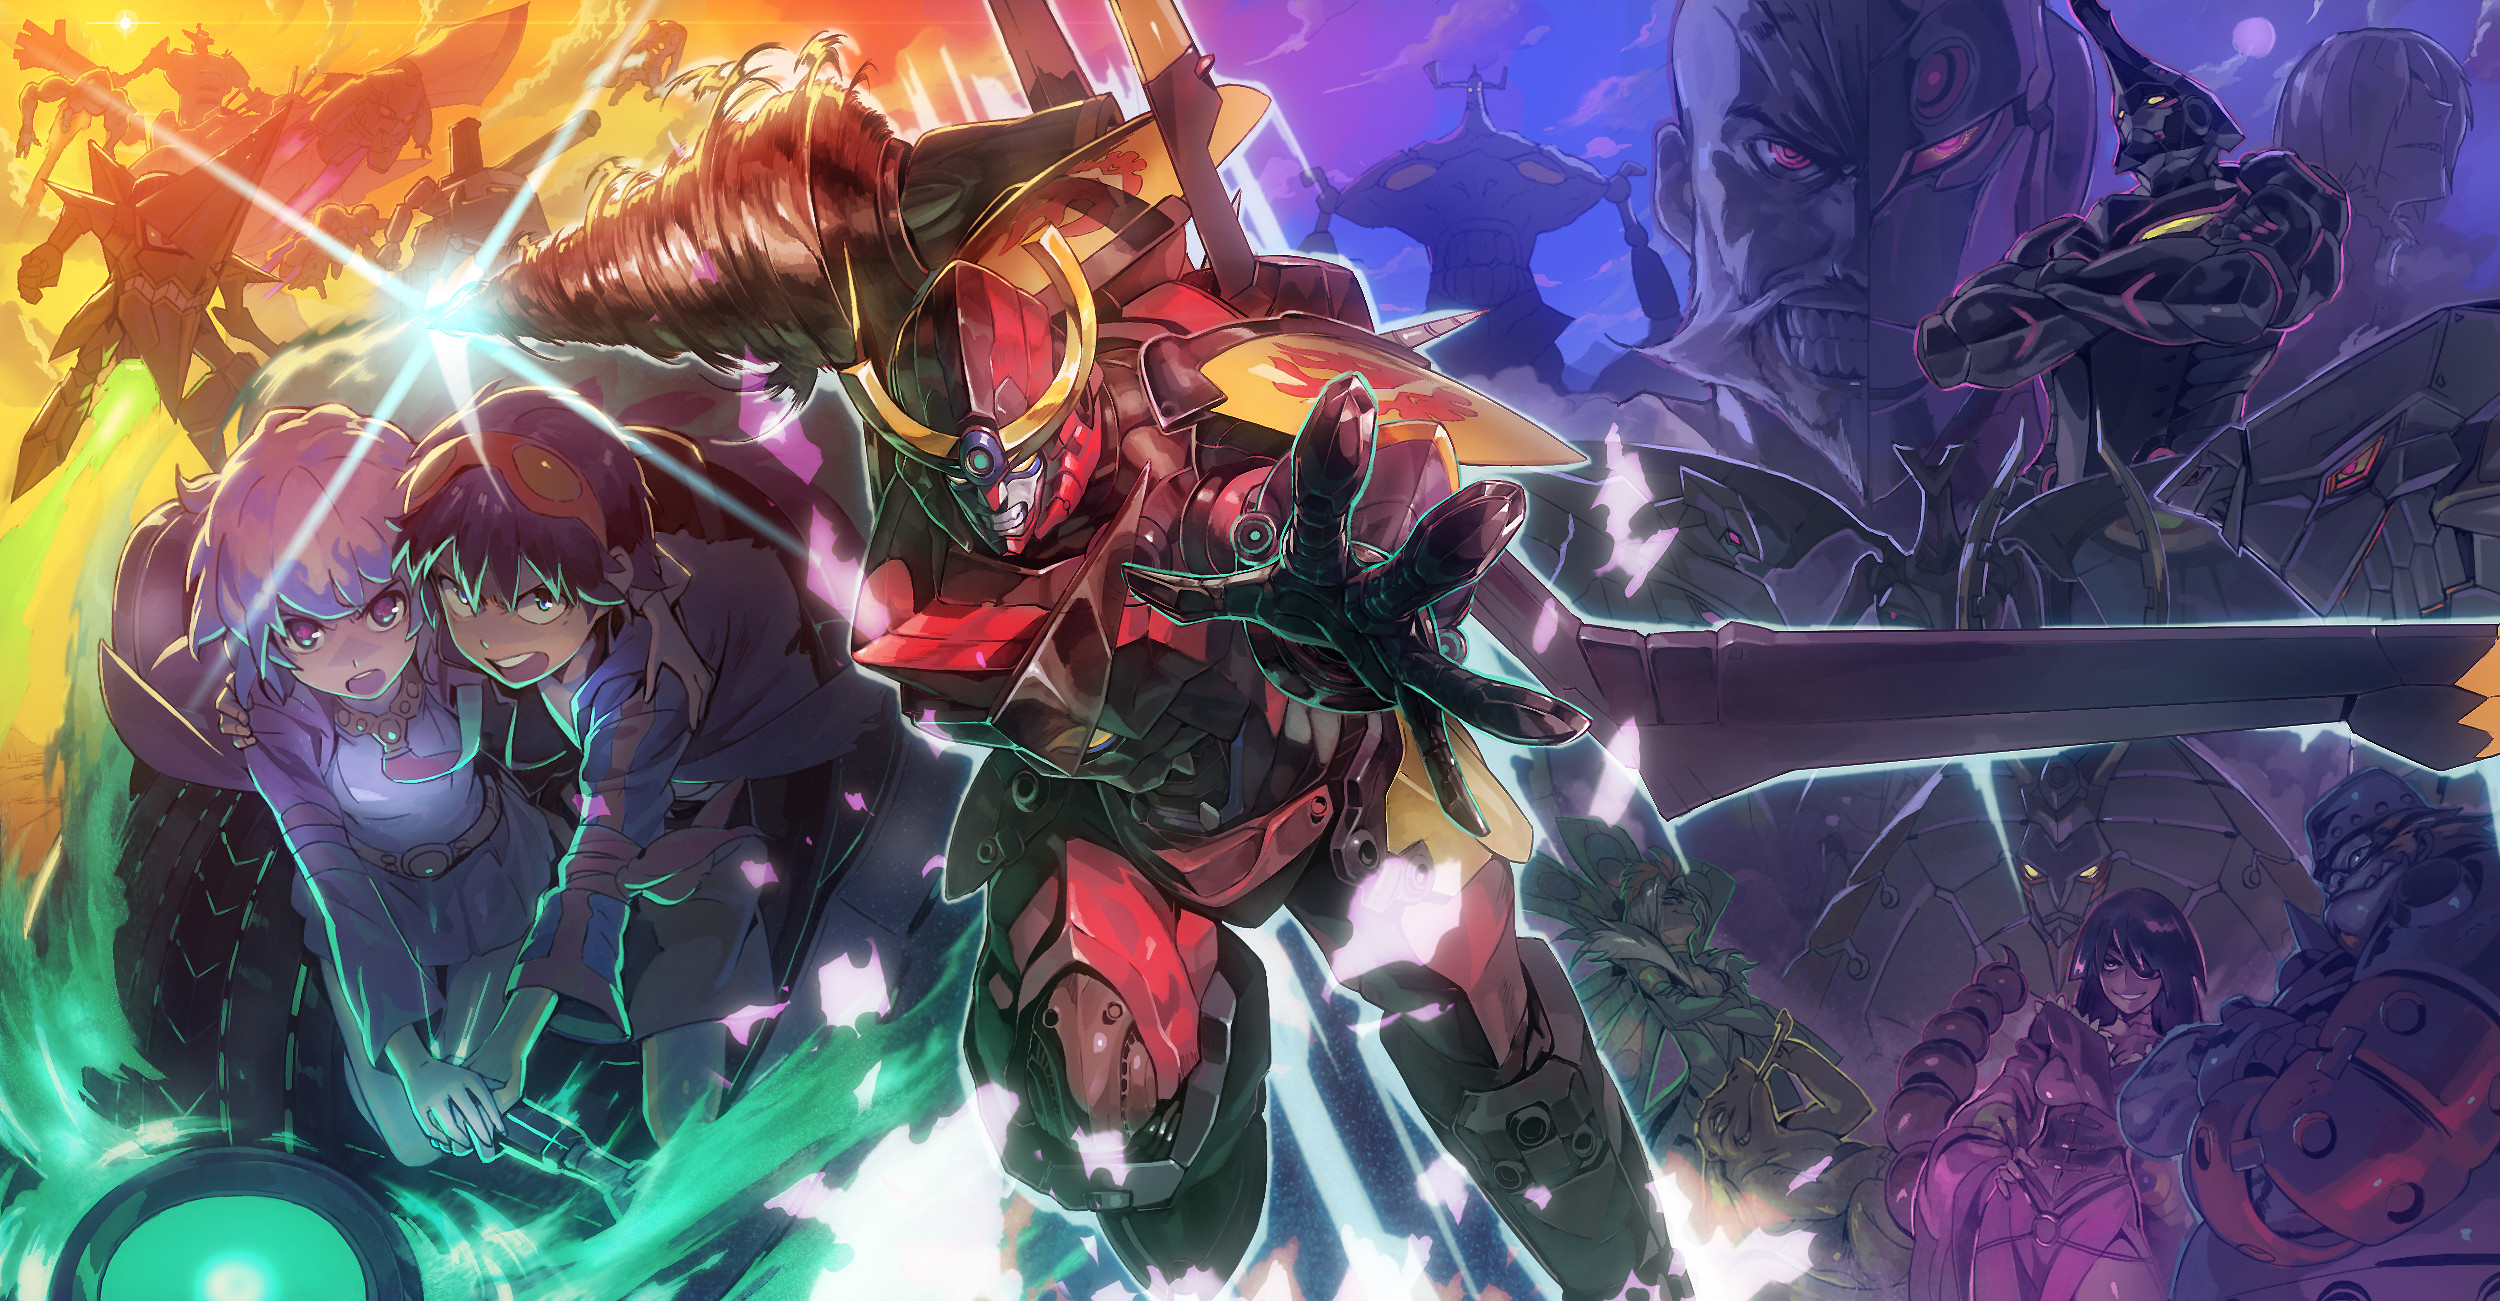 Tengen Toppa Gurren Lagann wallpapers and background images for desktop,  iPhone, Android and any screen resolution.